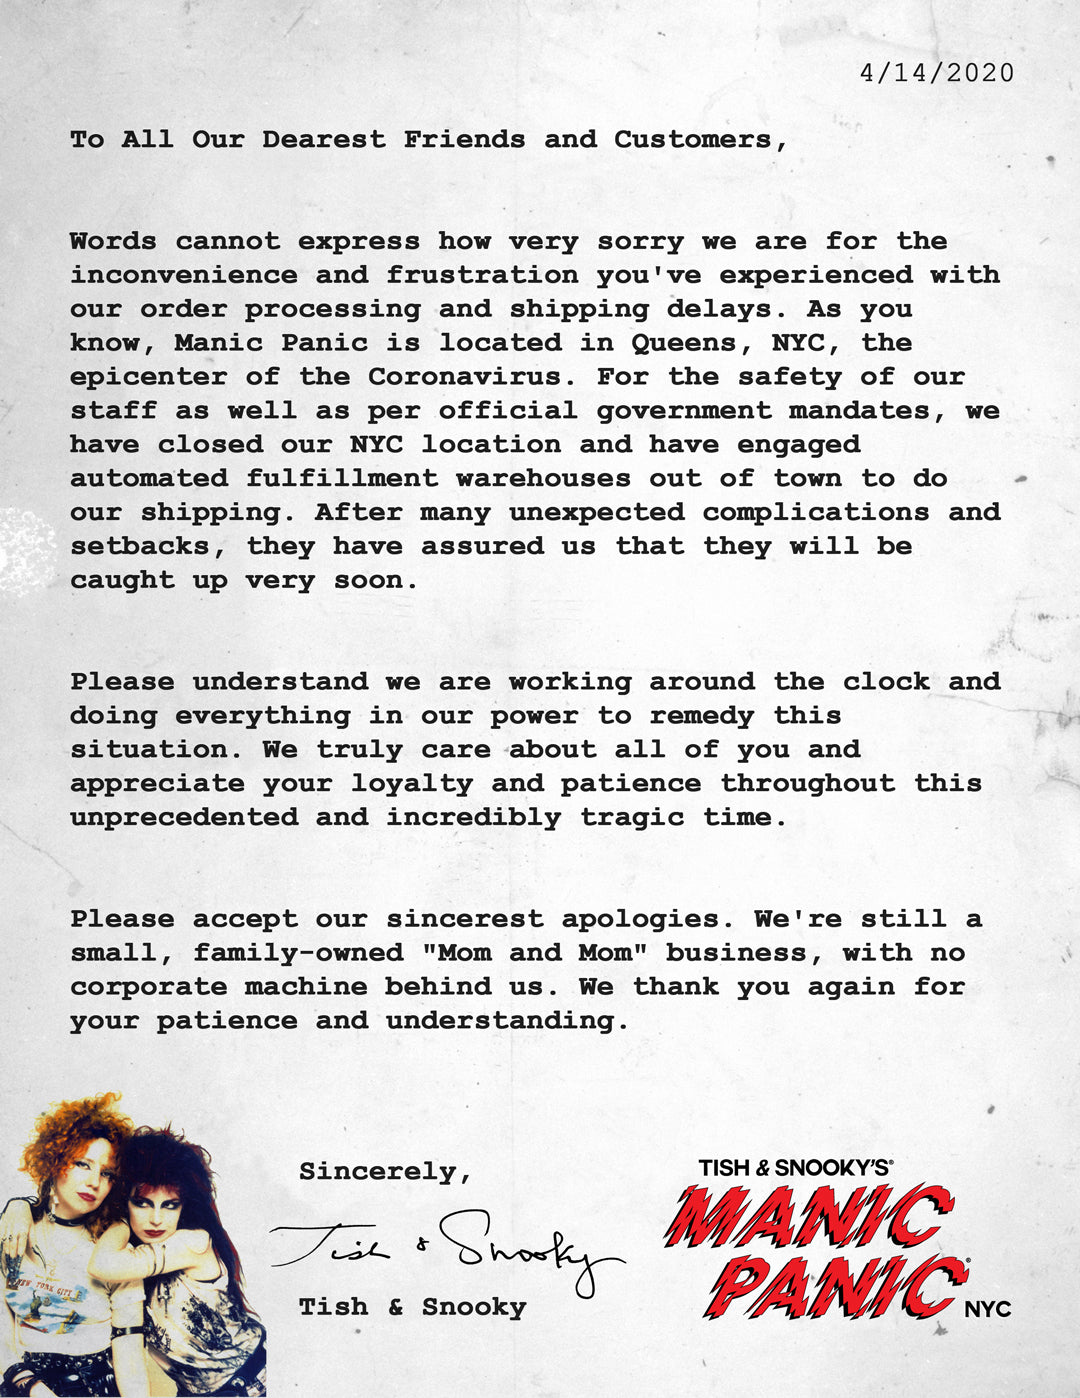 "To All Our Dearest Friends and Customers,   Words cannot express how very sorry we are for the inconvenience and frustration you've experienced with our order processing and shipping delays. As you know, Manic Panic is located in Queens, NYC, the epicenter of the Coronavirus. For the safety of our staff as well as per official government mandates, we have closed our NYC location and have engaged automated fulfillment warehouses out of town to do our shipping. After many unexpected complications and setbacks, they have assured us that they will be caught up very soon.   Please understand we are working around the clock and doing everything in our power to remedy this situation. We truly care about all of you and appreciate your loyalty and patience throughout this unprecedented and incredibly tragic time.   Please accept our sincerest apologies. We're still a small, family-owned ""Mom and Mom"" business, with no corporate machine behind us. We thank you again for your patience and understanding.   Sincerely,     Tish & Snooky"